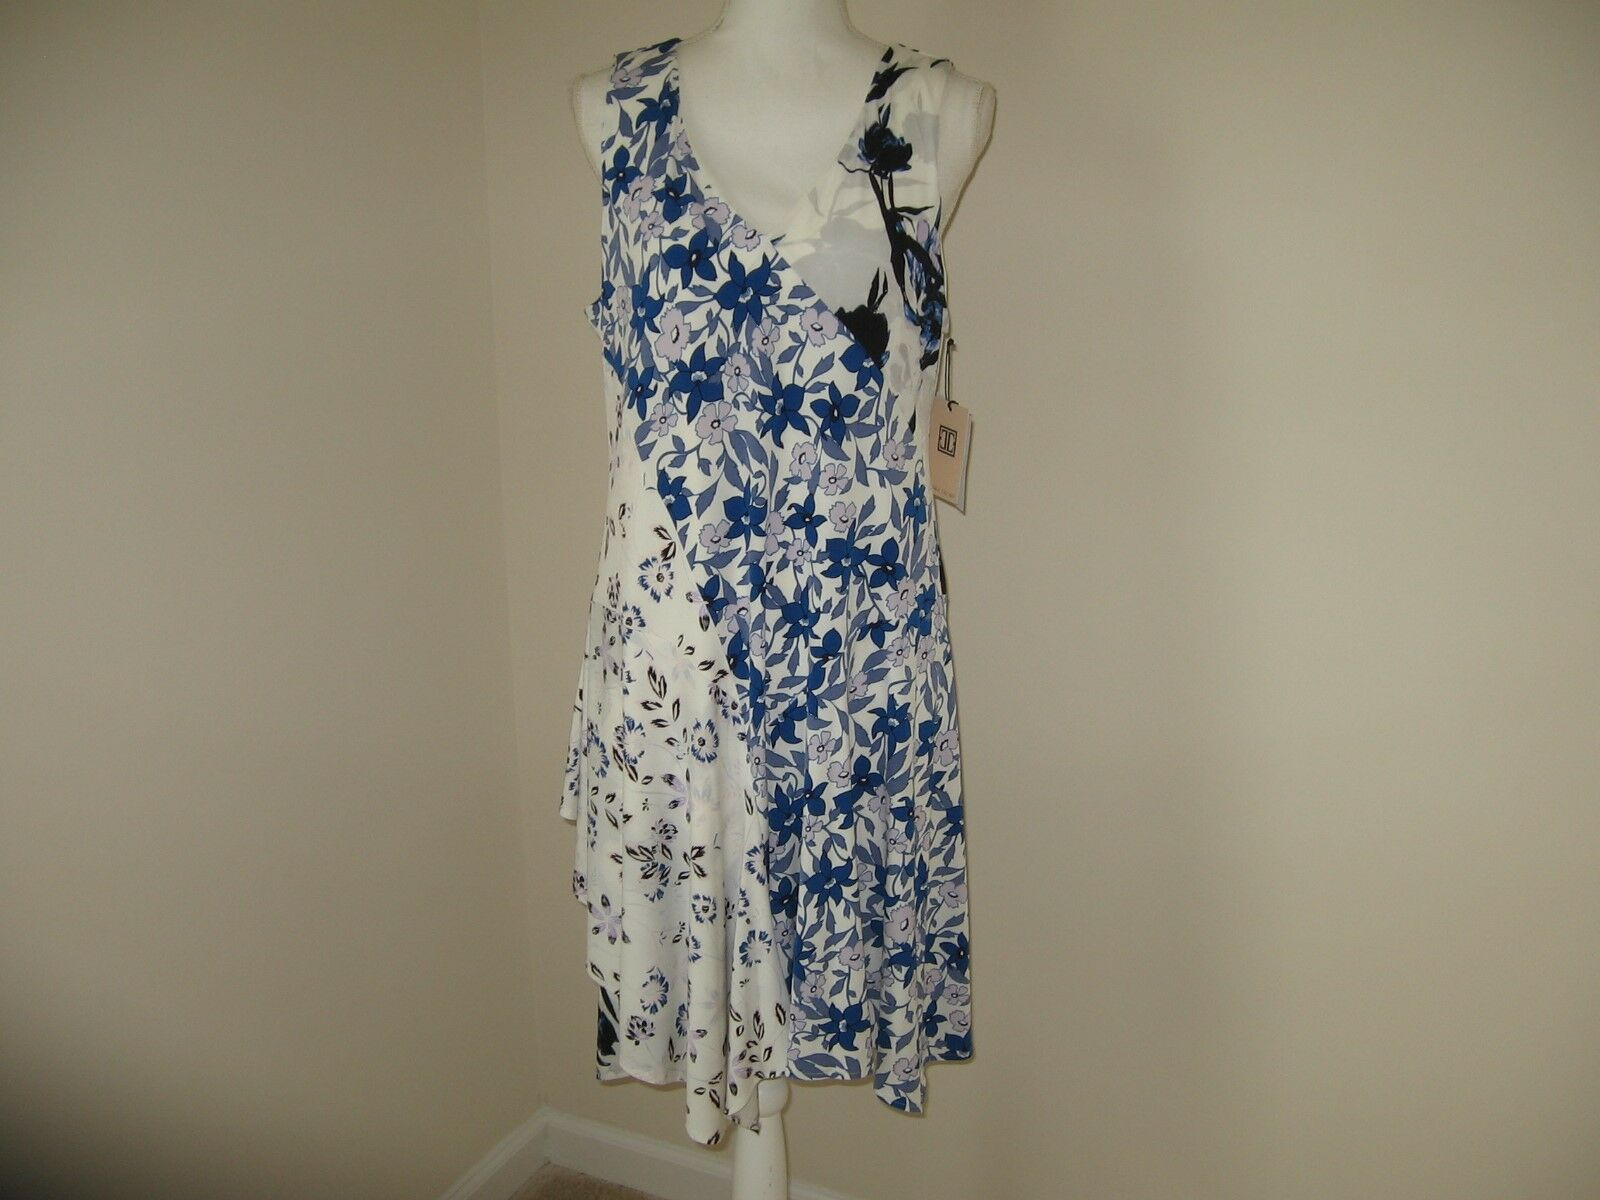 Ivanka Trump Floral-Print Drop-Waist Fit & Flare Dress for Woman Size L NWT